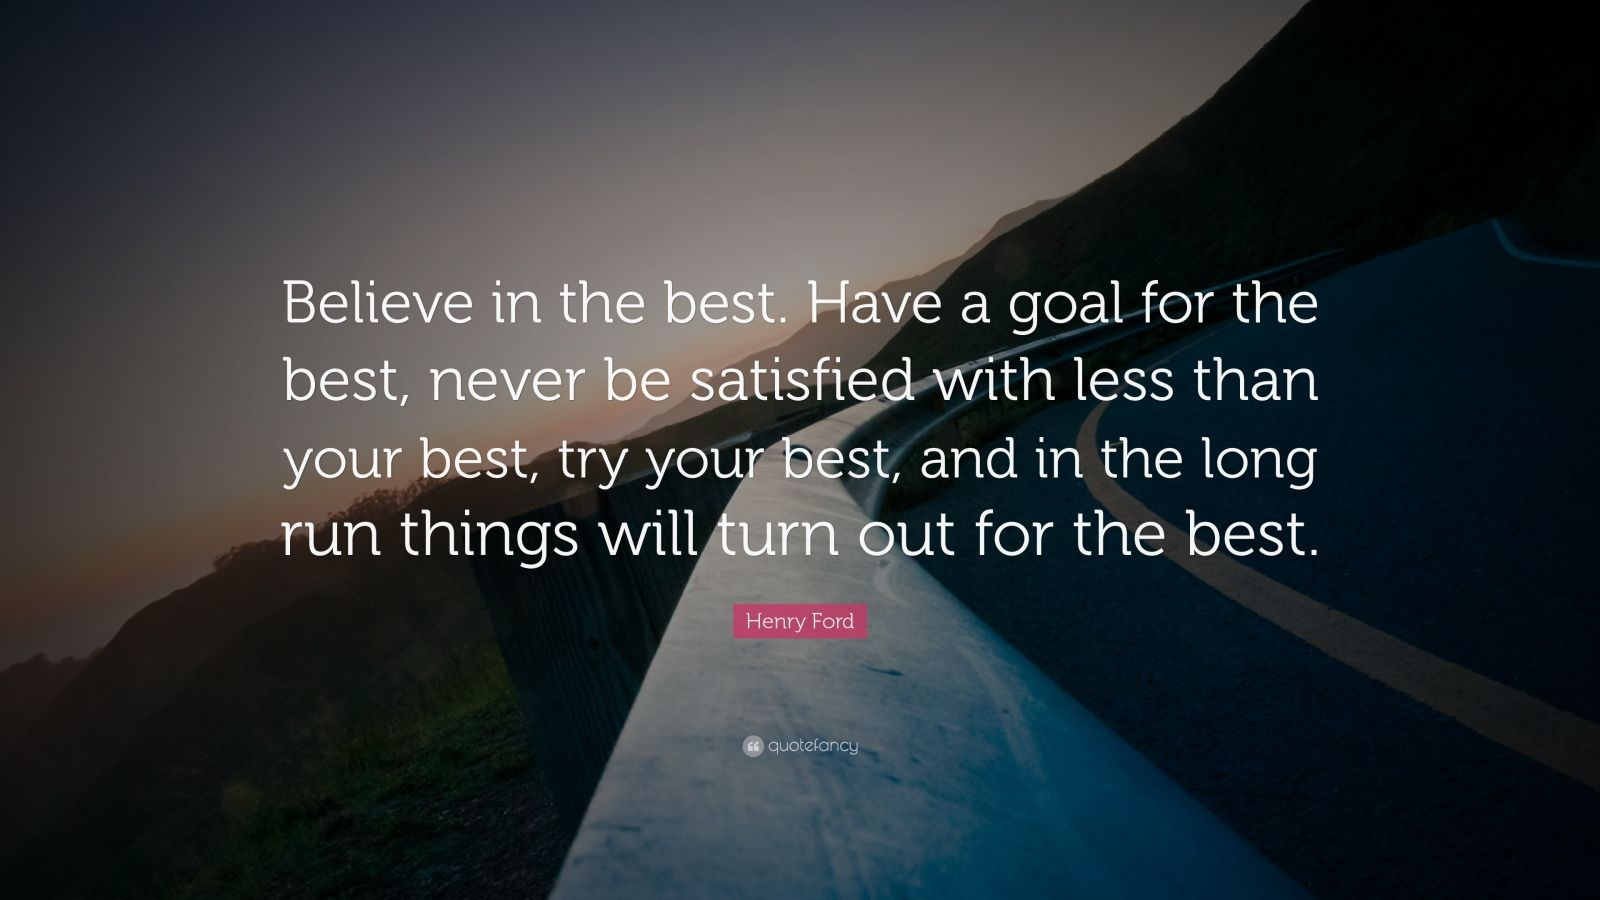 "Henry Ford Quote: ""Believe in the best. Have a goal for the best, never be satisfied with less than your best, try your best, and in the long run things will turn out for the best."""